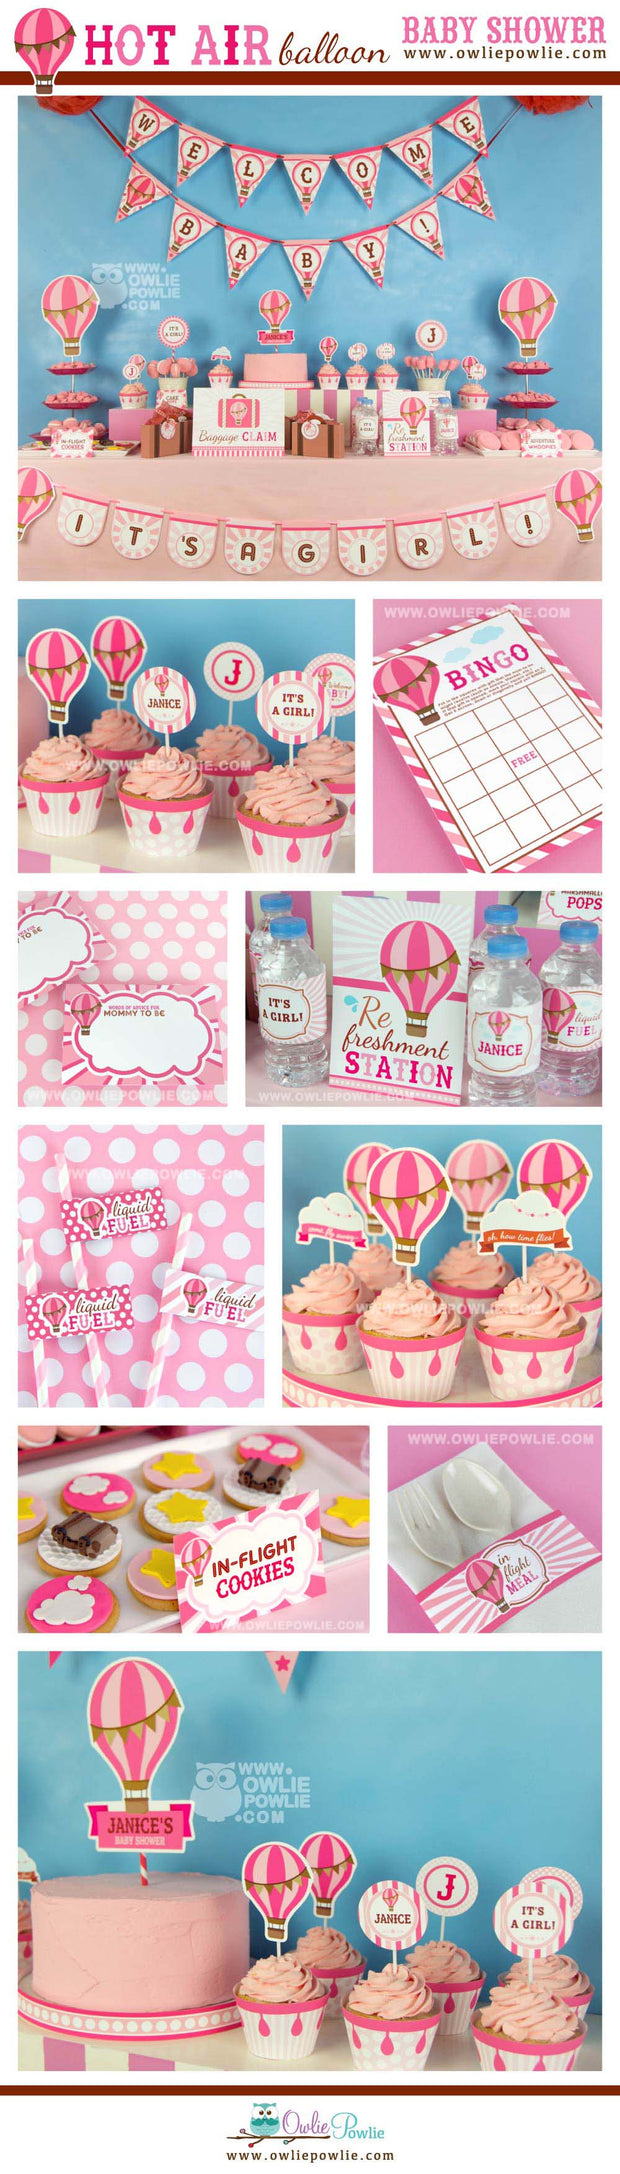 Pink Hot Air Balloon Baby Shower Party Package